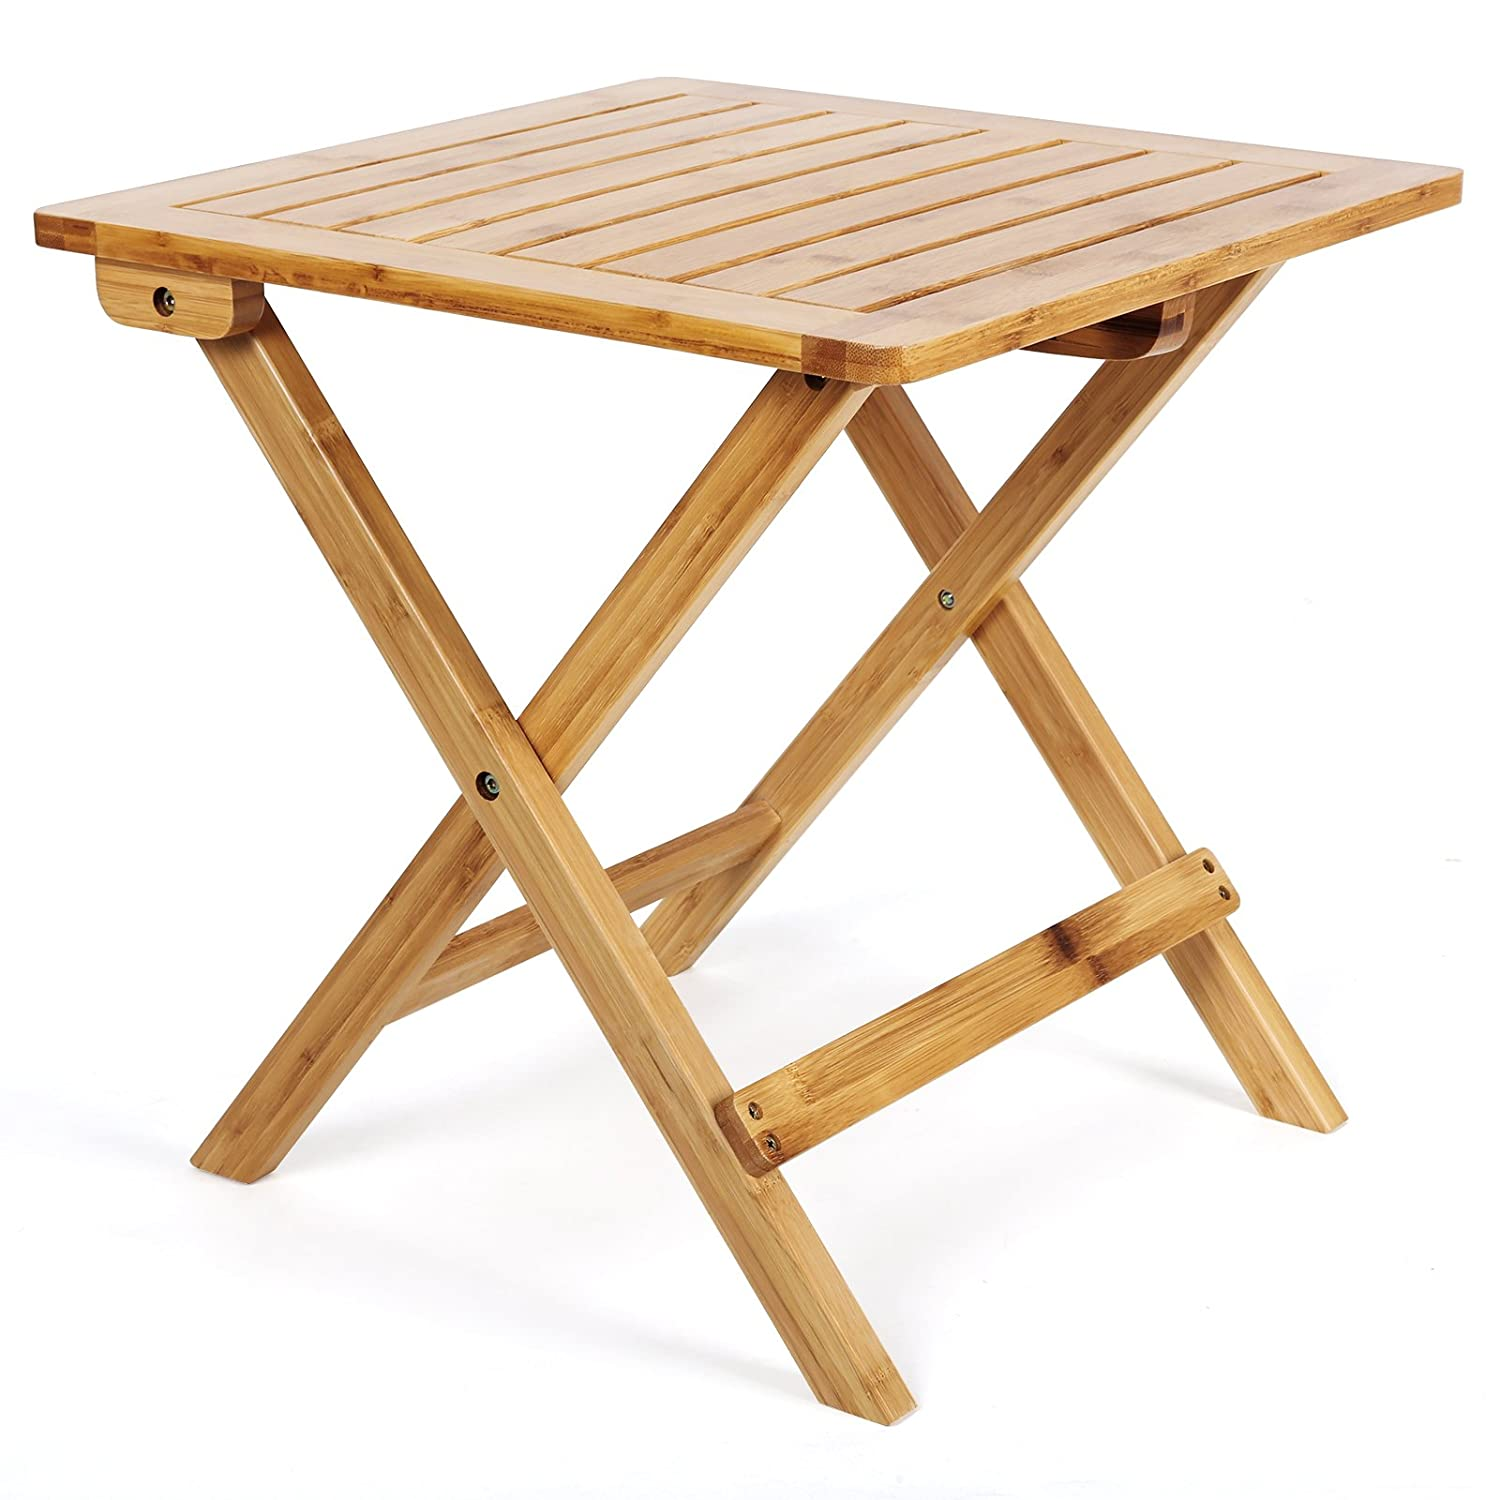 songmics natural bamboo garden table folding table wood outdoor coffee snack side table gzdn. Black Bedroom Furniture Sets. Home Design Ideas